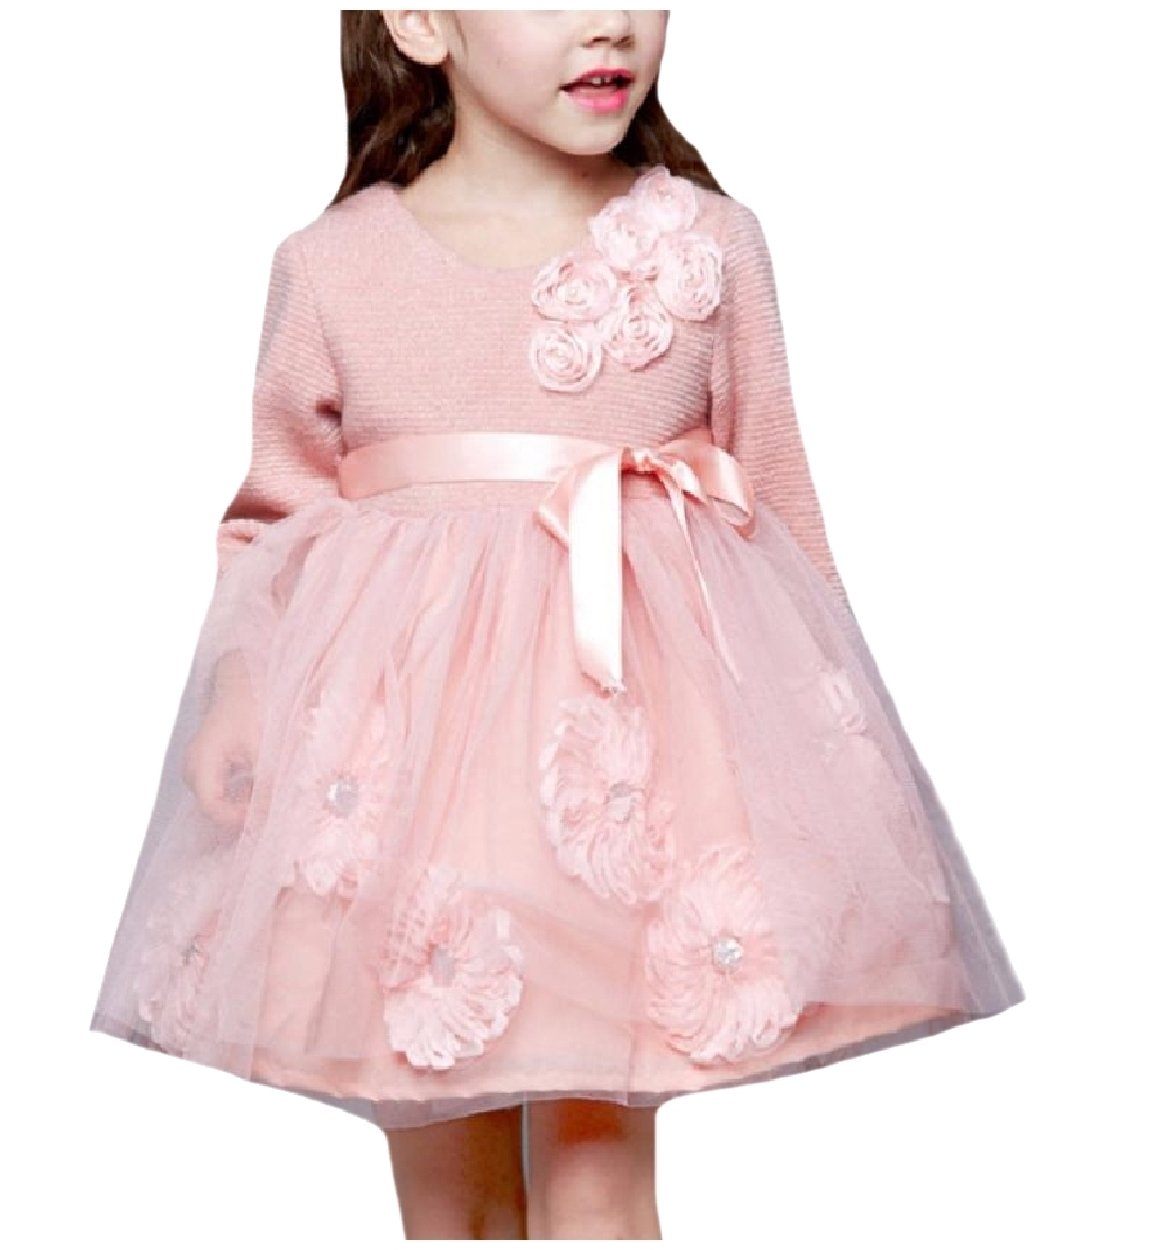 Winwinus Girls' Pure Color Fine Cotton With Mesh Overlay Party Sundress Pink 110 by Winwinus (Image #1)